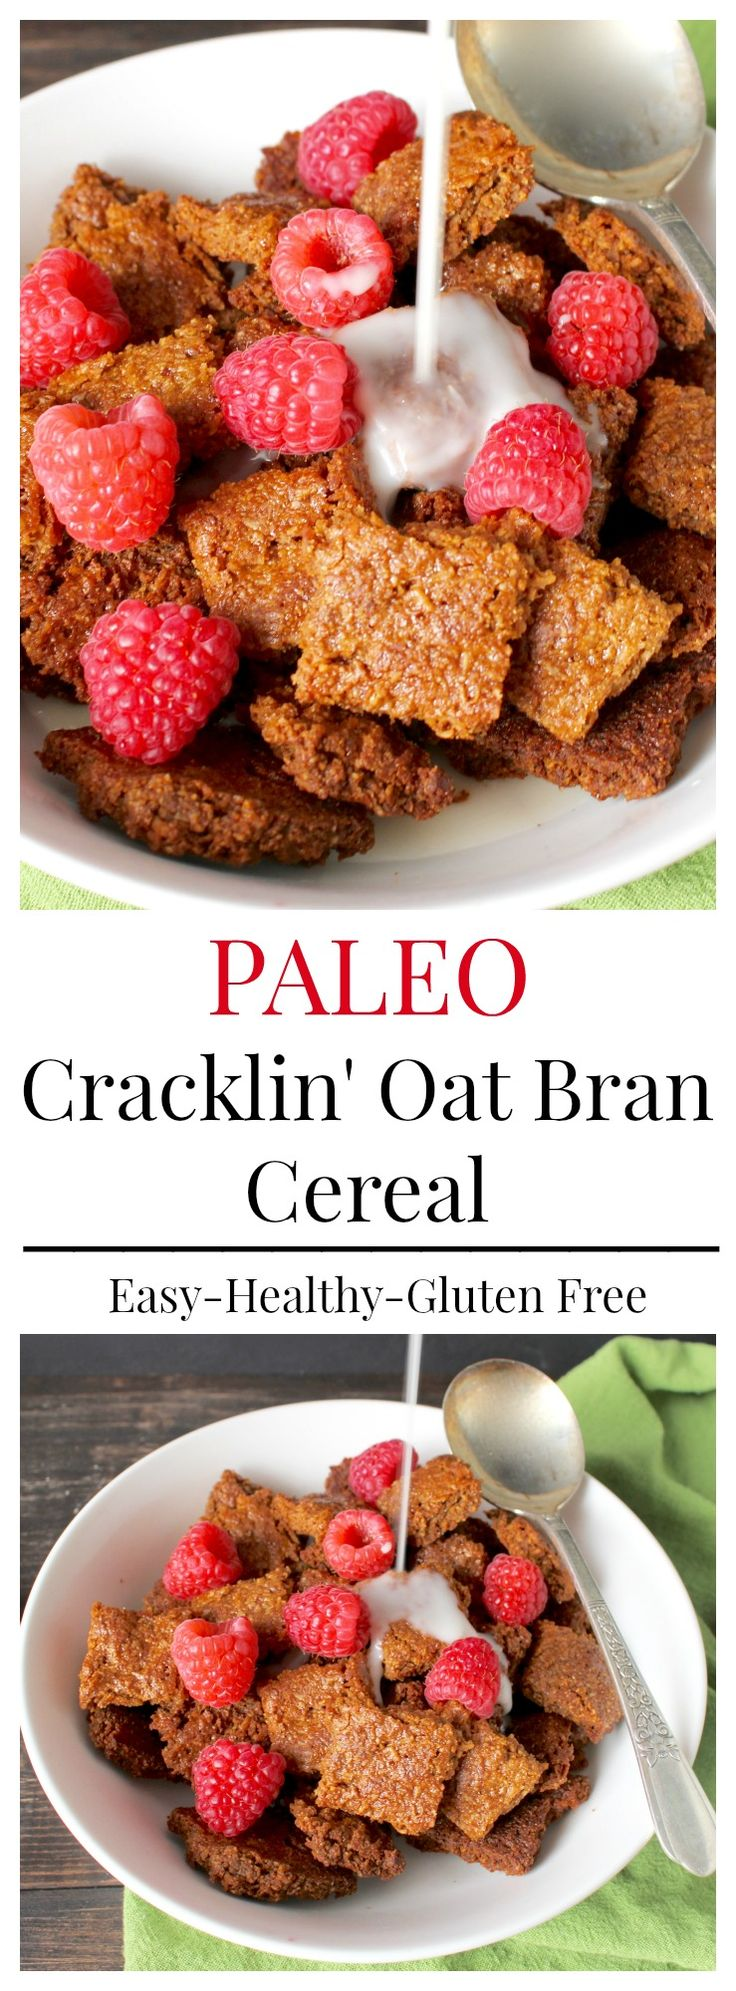 Paleo Cracklin Oat Bran- a healthy, gluten free version of the popular cereal. So easy and so delicious! Dairy free, grain free.